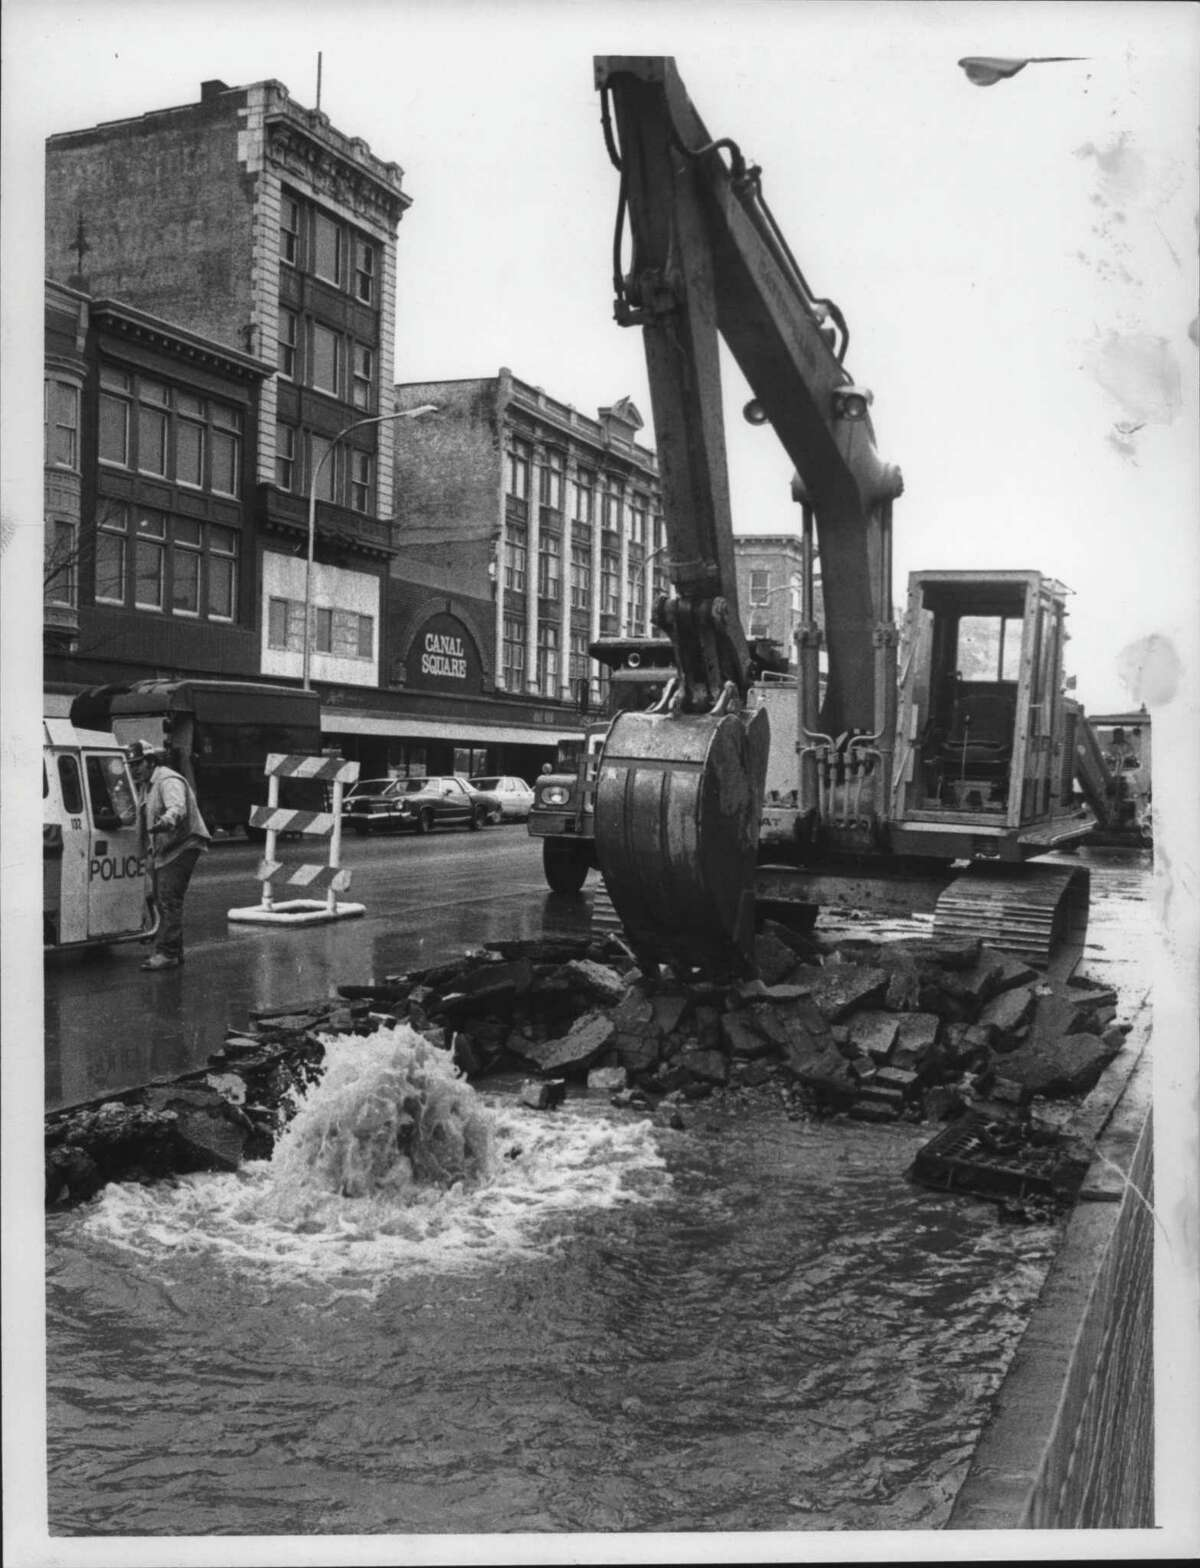 State Street at Jay, Schenectady, New York - This large shovel tearing up the pavement on the north side of State Street got more than he bargained for as he also tore up a water pipe in the process, filling up the ditch with water. The sign on the building across the street says Canal Square - maybe they'll make it a canal instead. April 4, 1984 (Paul D. Kniskern Sr./Times Union Archive)